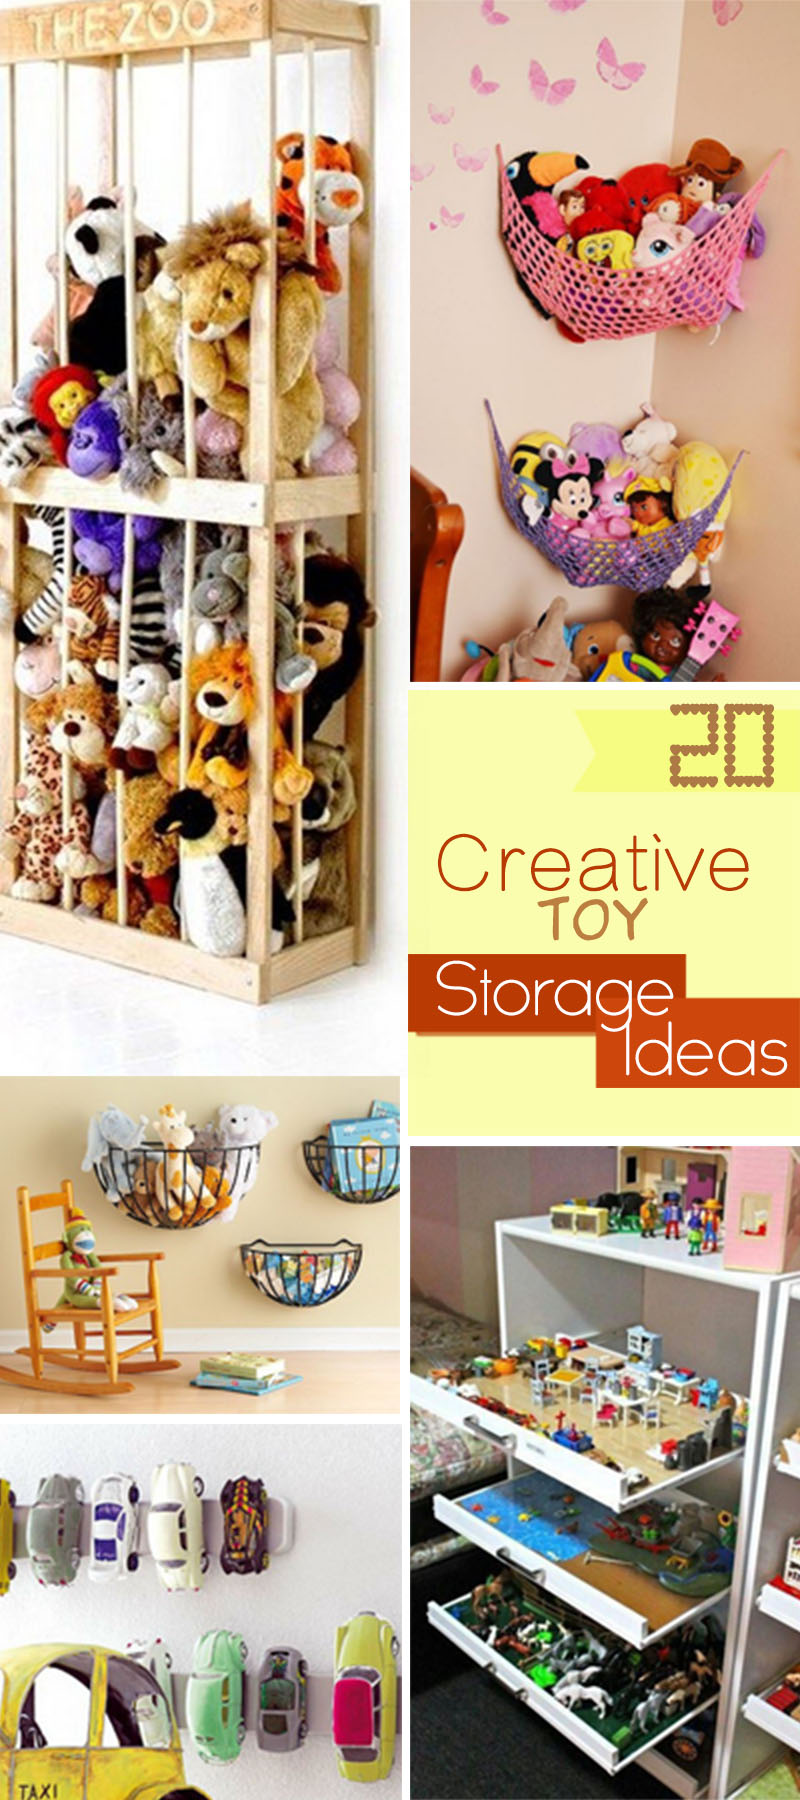 Toys Storage Ideas For Boys : Creative toy storage ideas hative